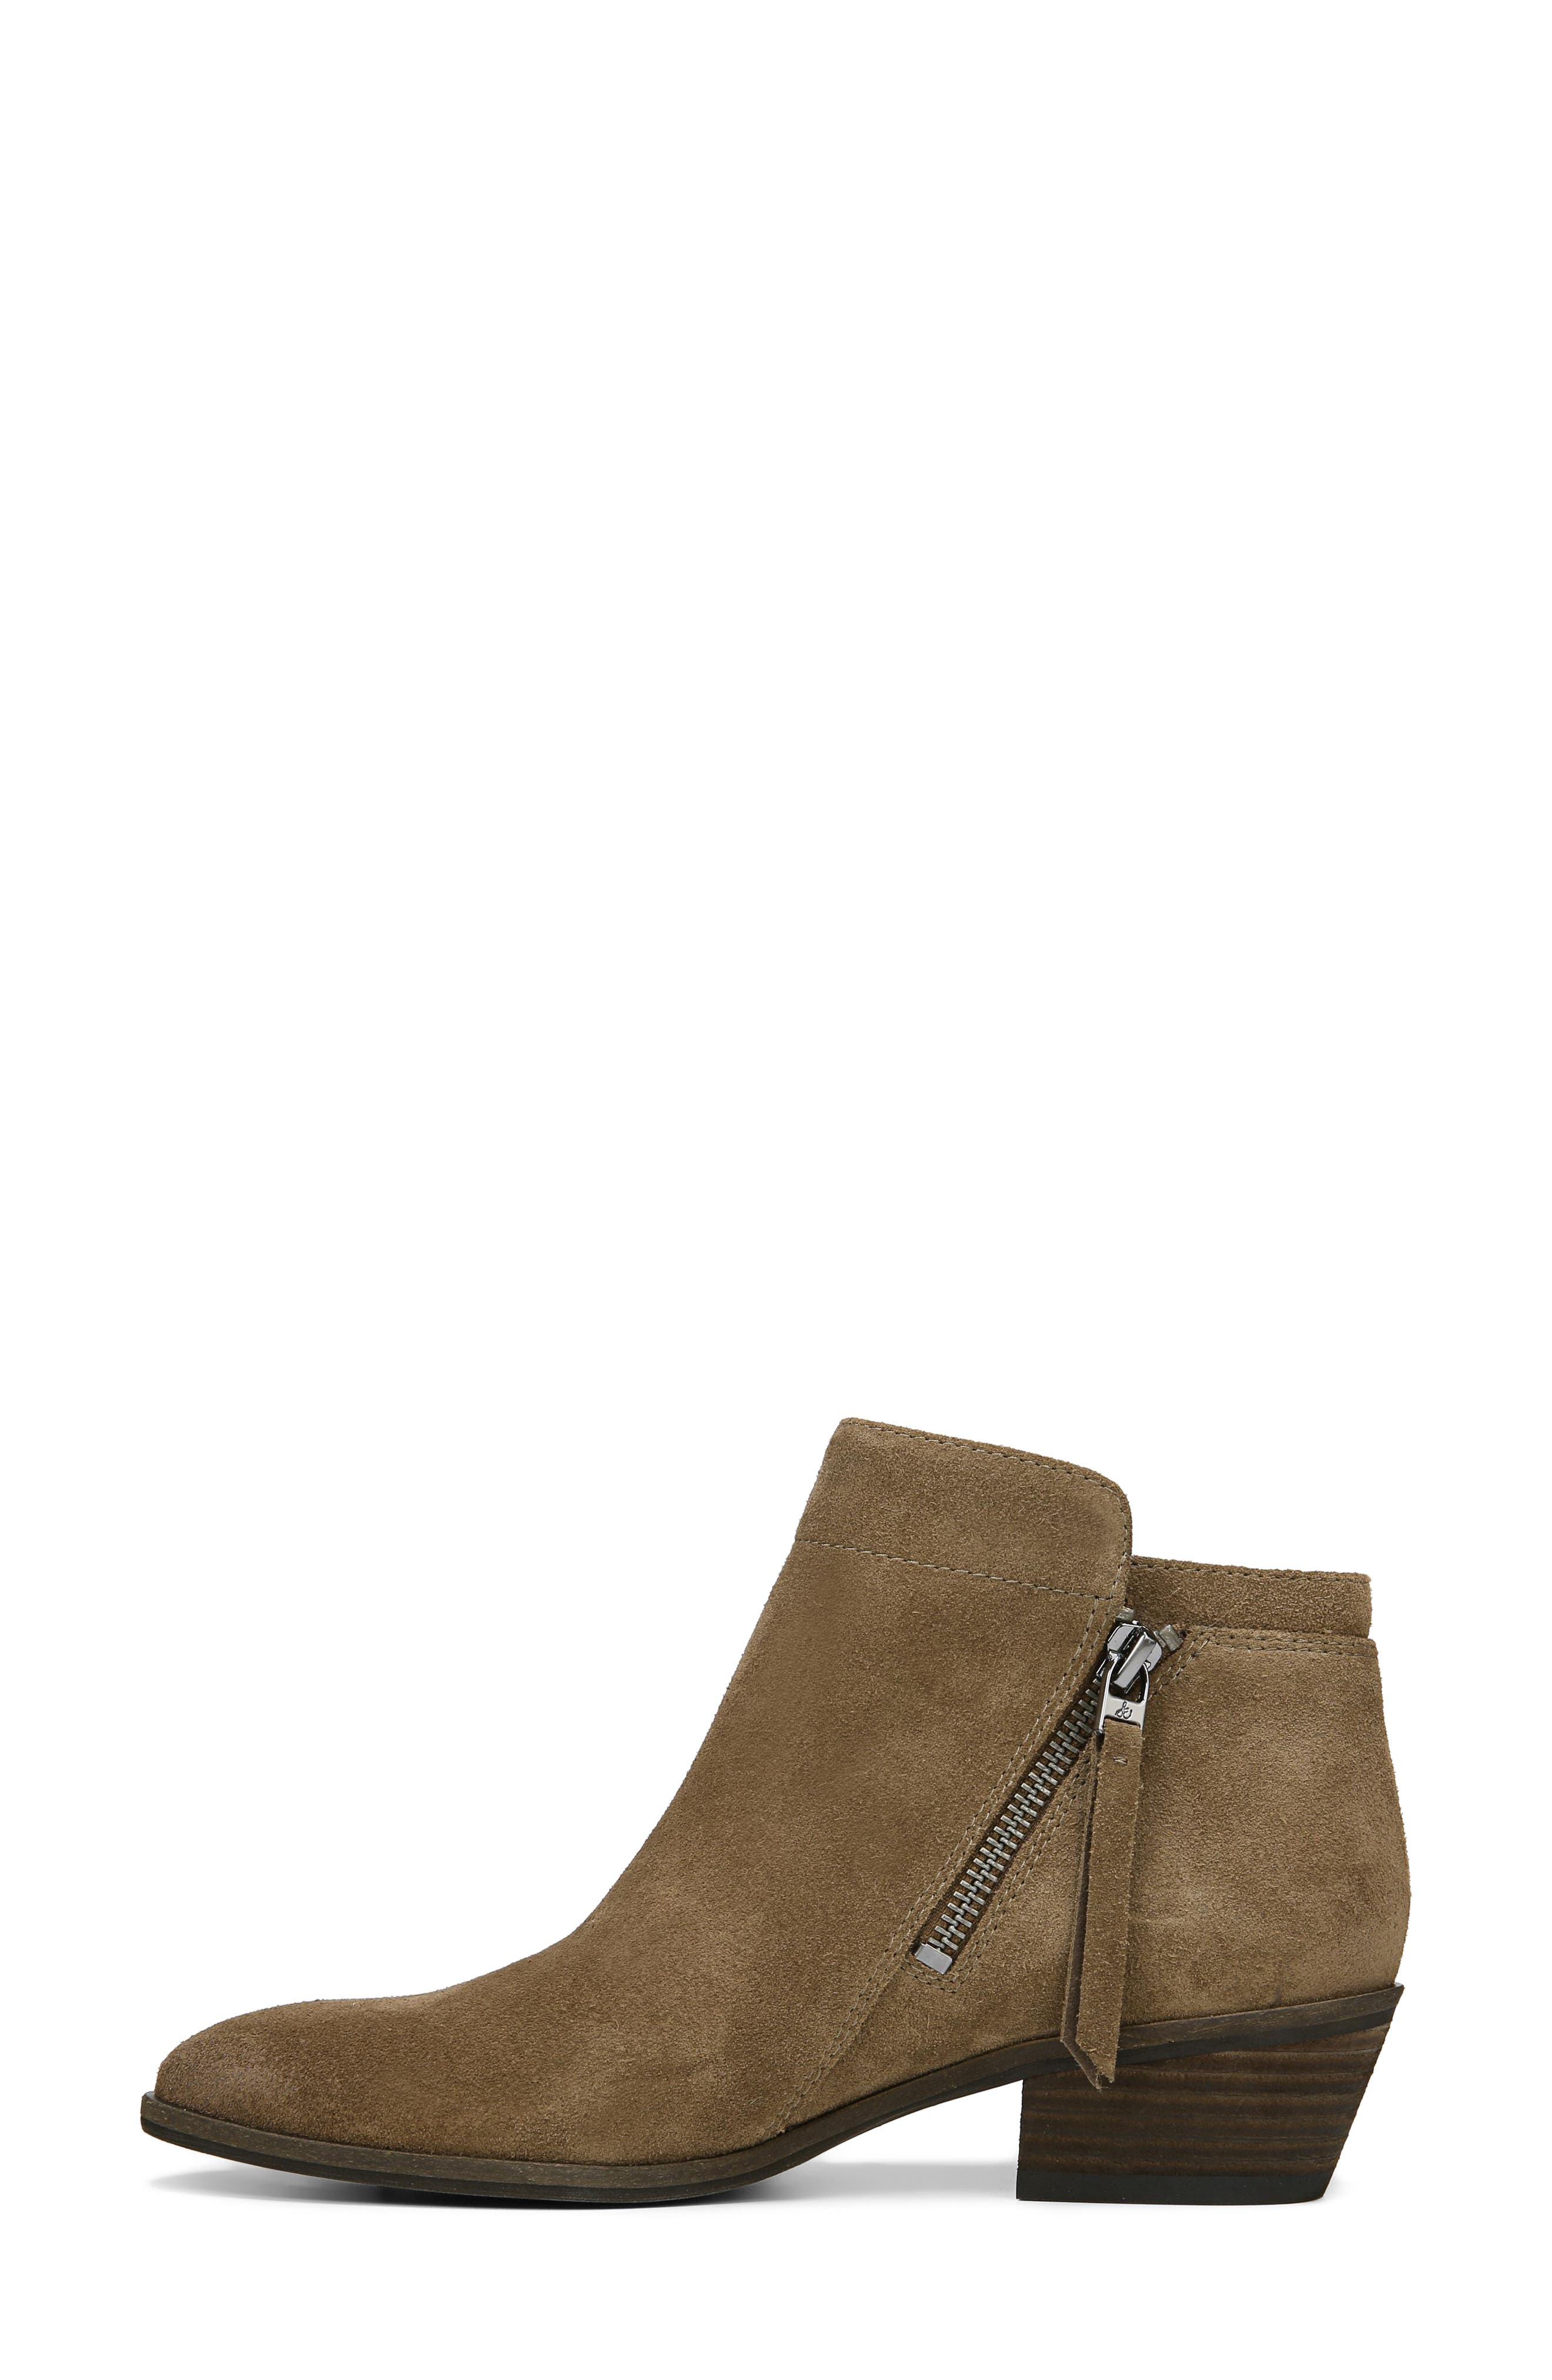 Packer Bootie,                             Alternate thumbnail 8, color,                             DARK TAUPE SUEDE LEATHER